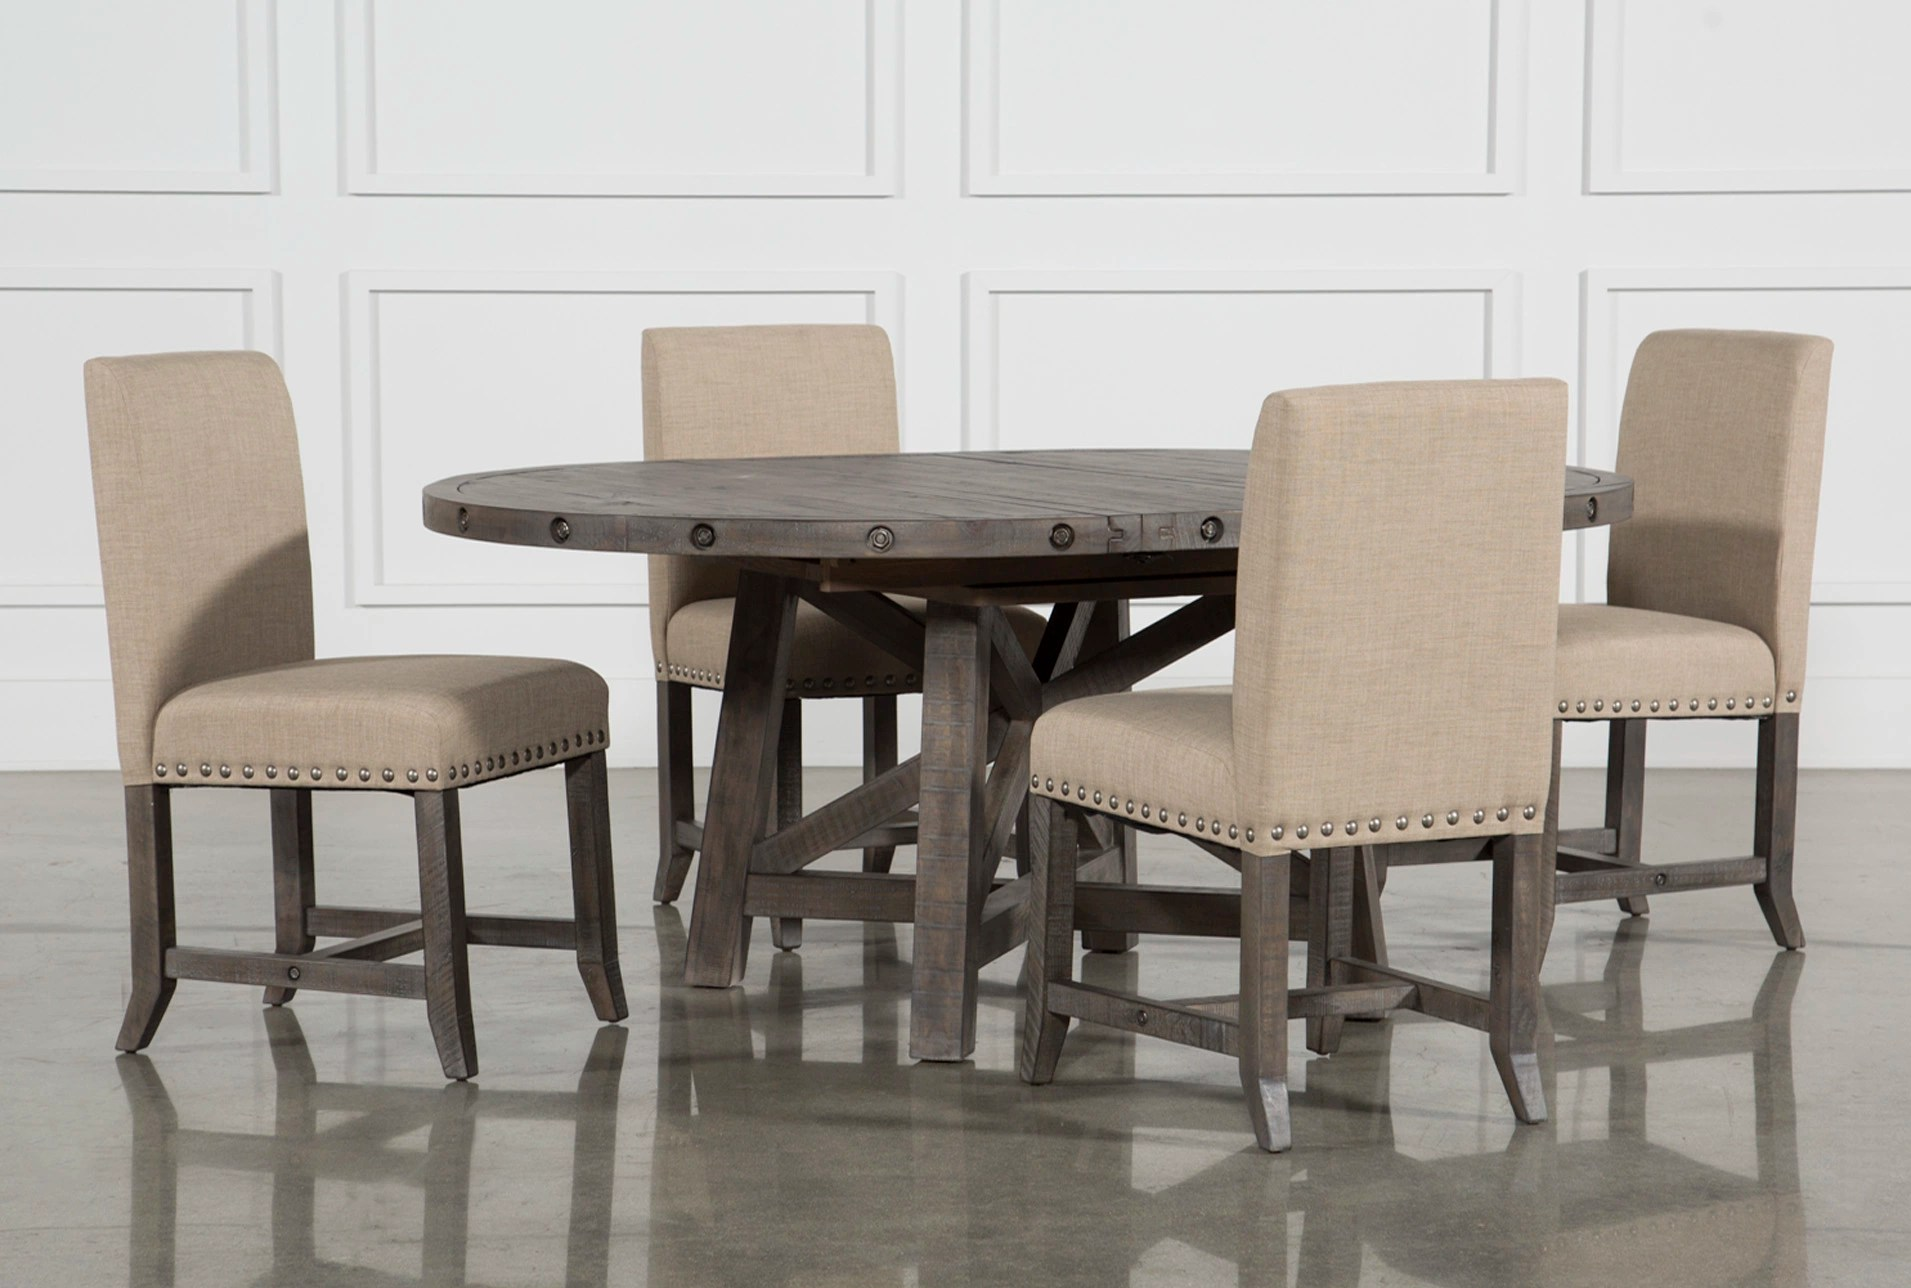 Living Spaces Dining Chairs Jaxon Grey 5 Piece Round Extension Dining Set W